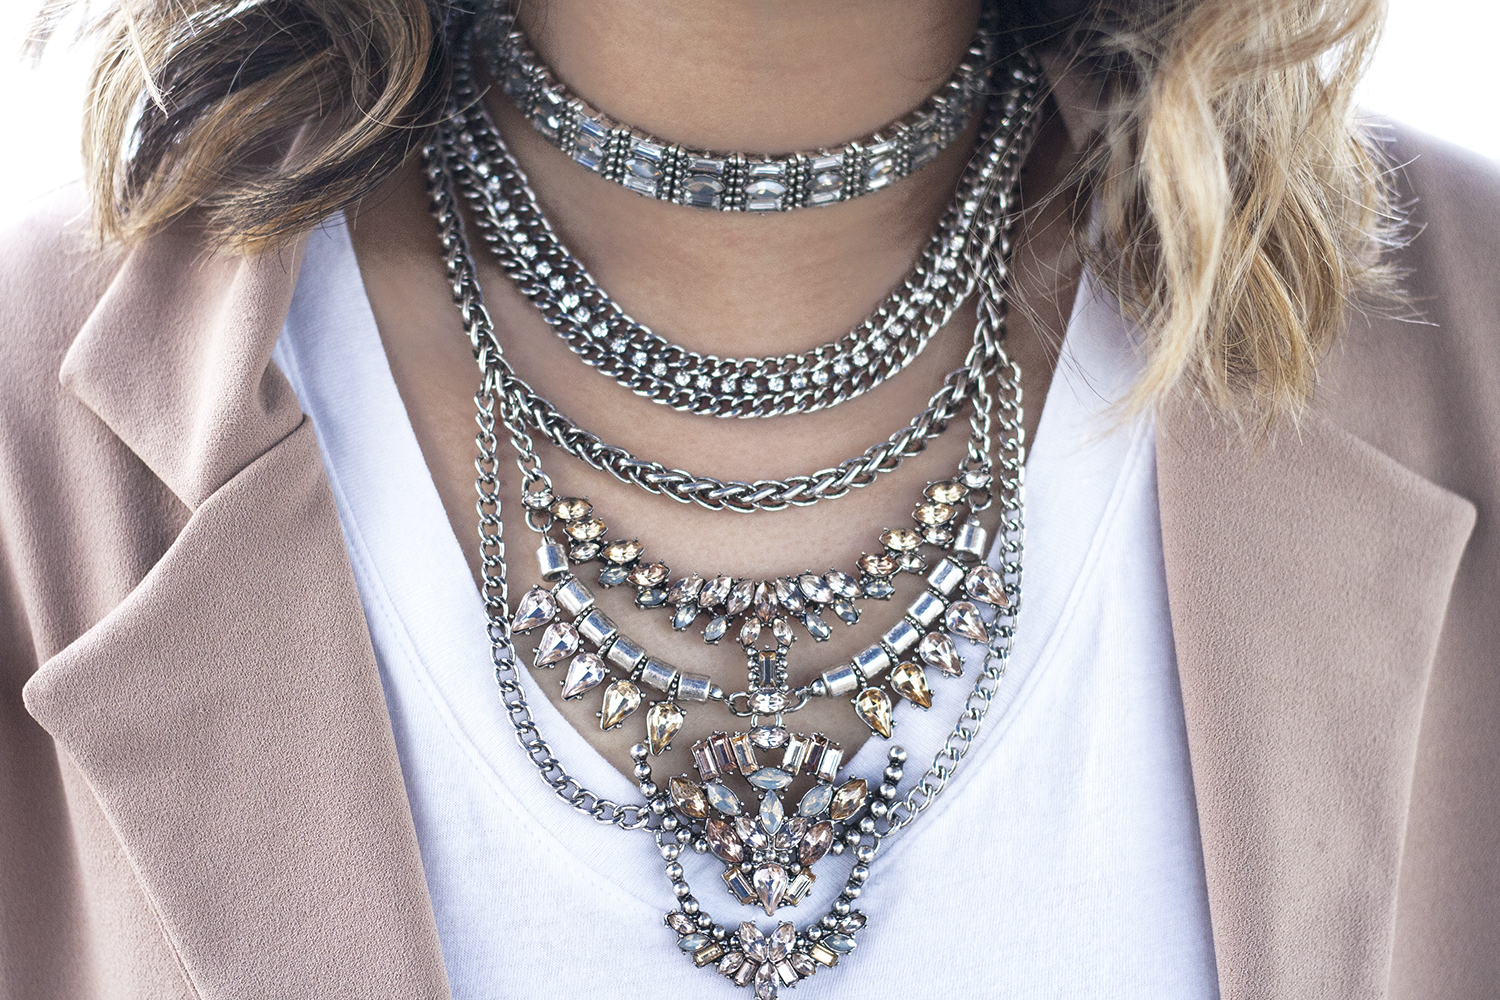 02baublebar-statement-necklace-sf-fashion-style